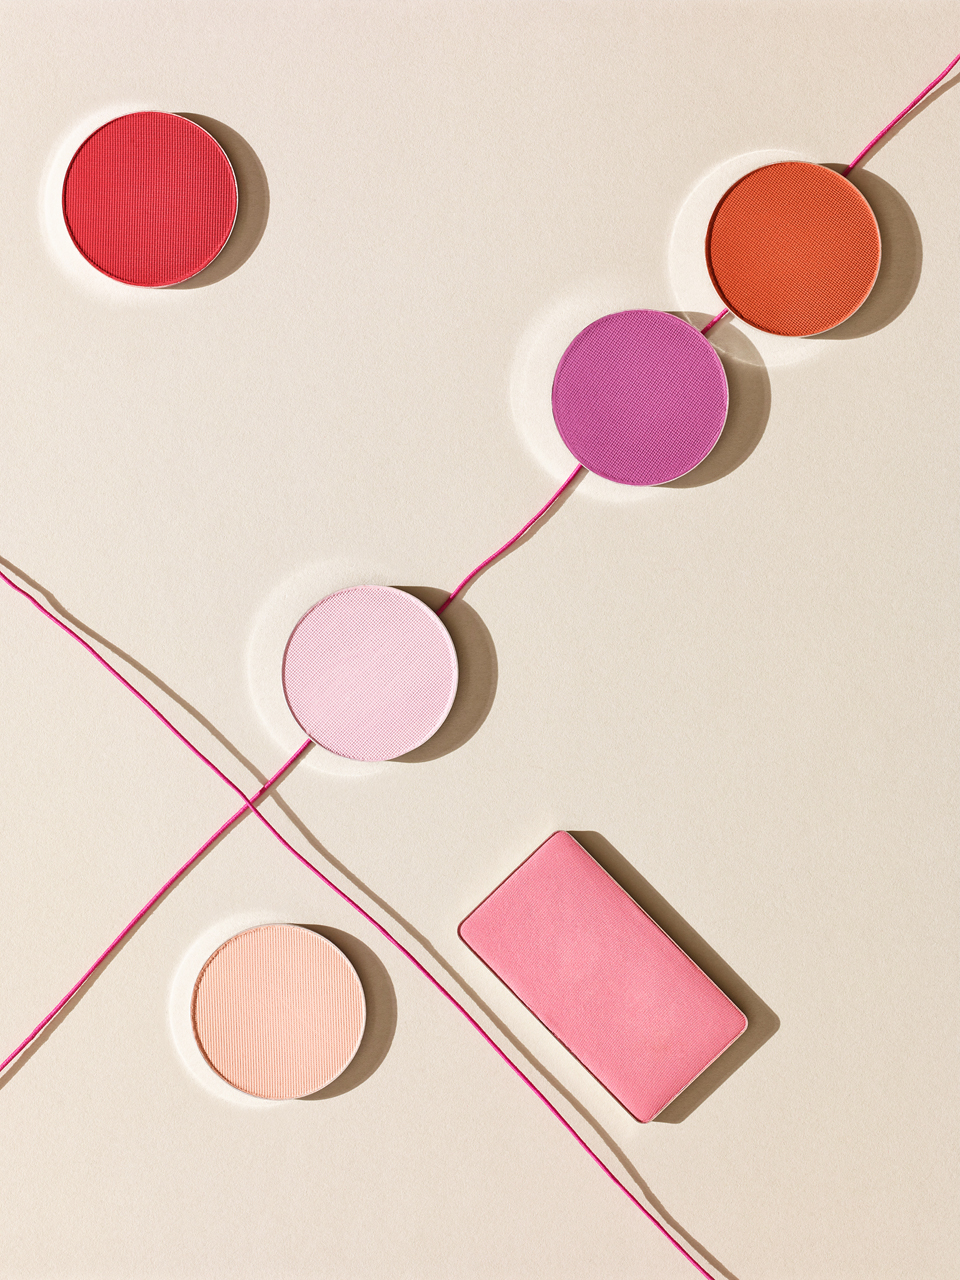 Sabine-Scheer-cosmetic-stillife-blushes-abstract-pattern